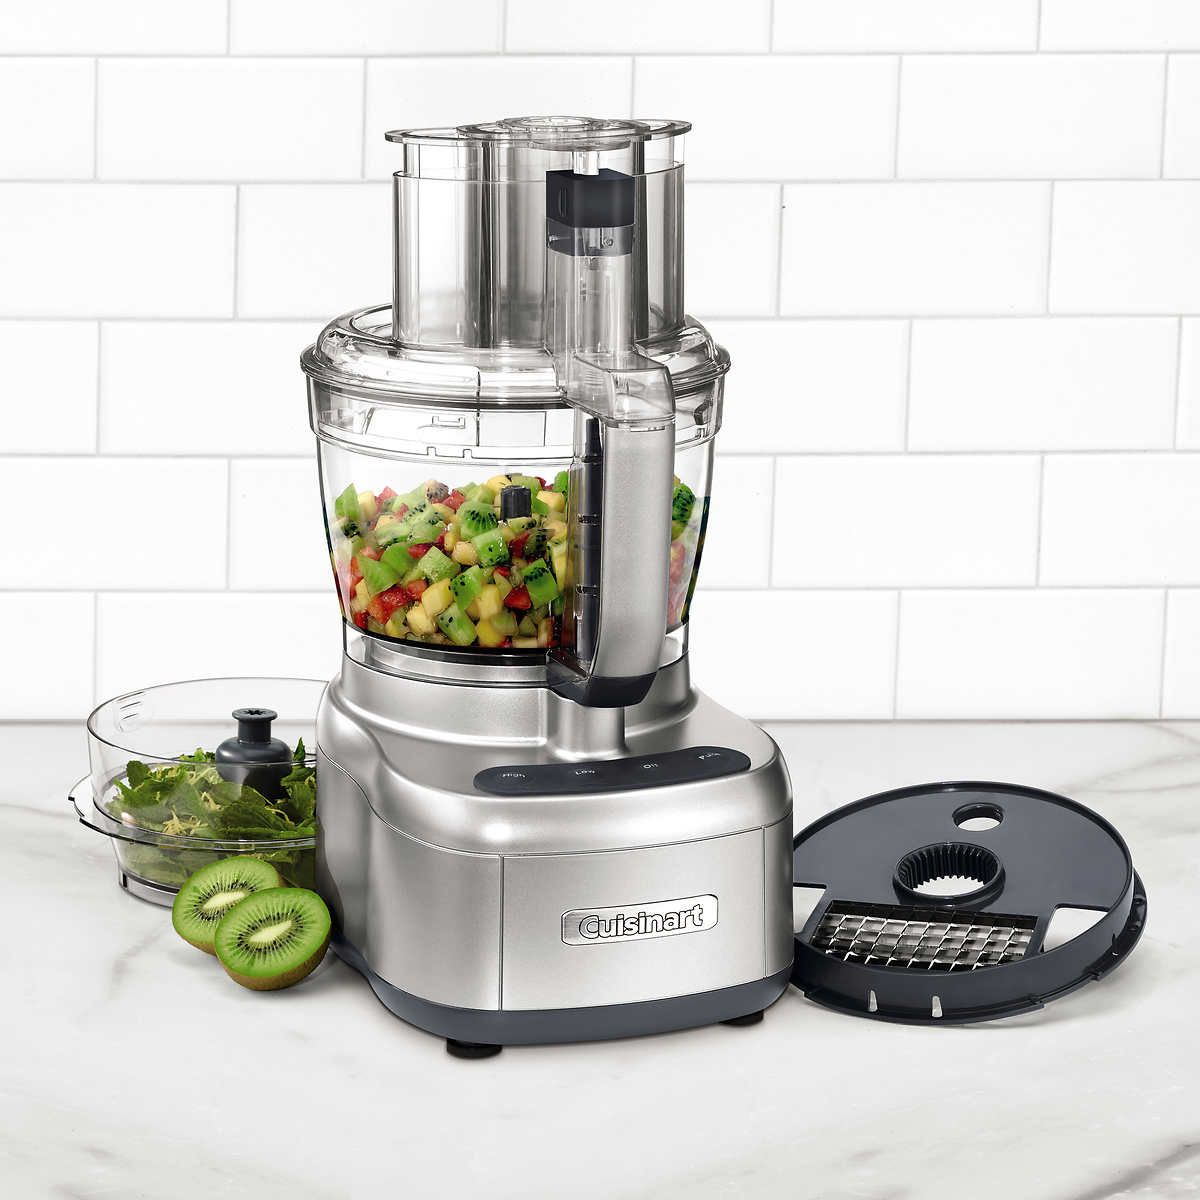 Cuisinart elemental 13cup food processor with dicing kit